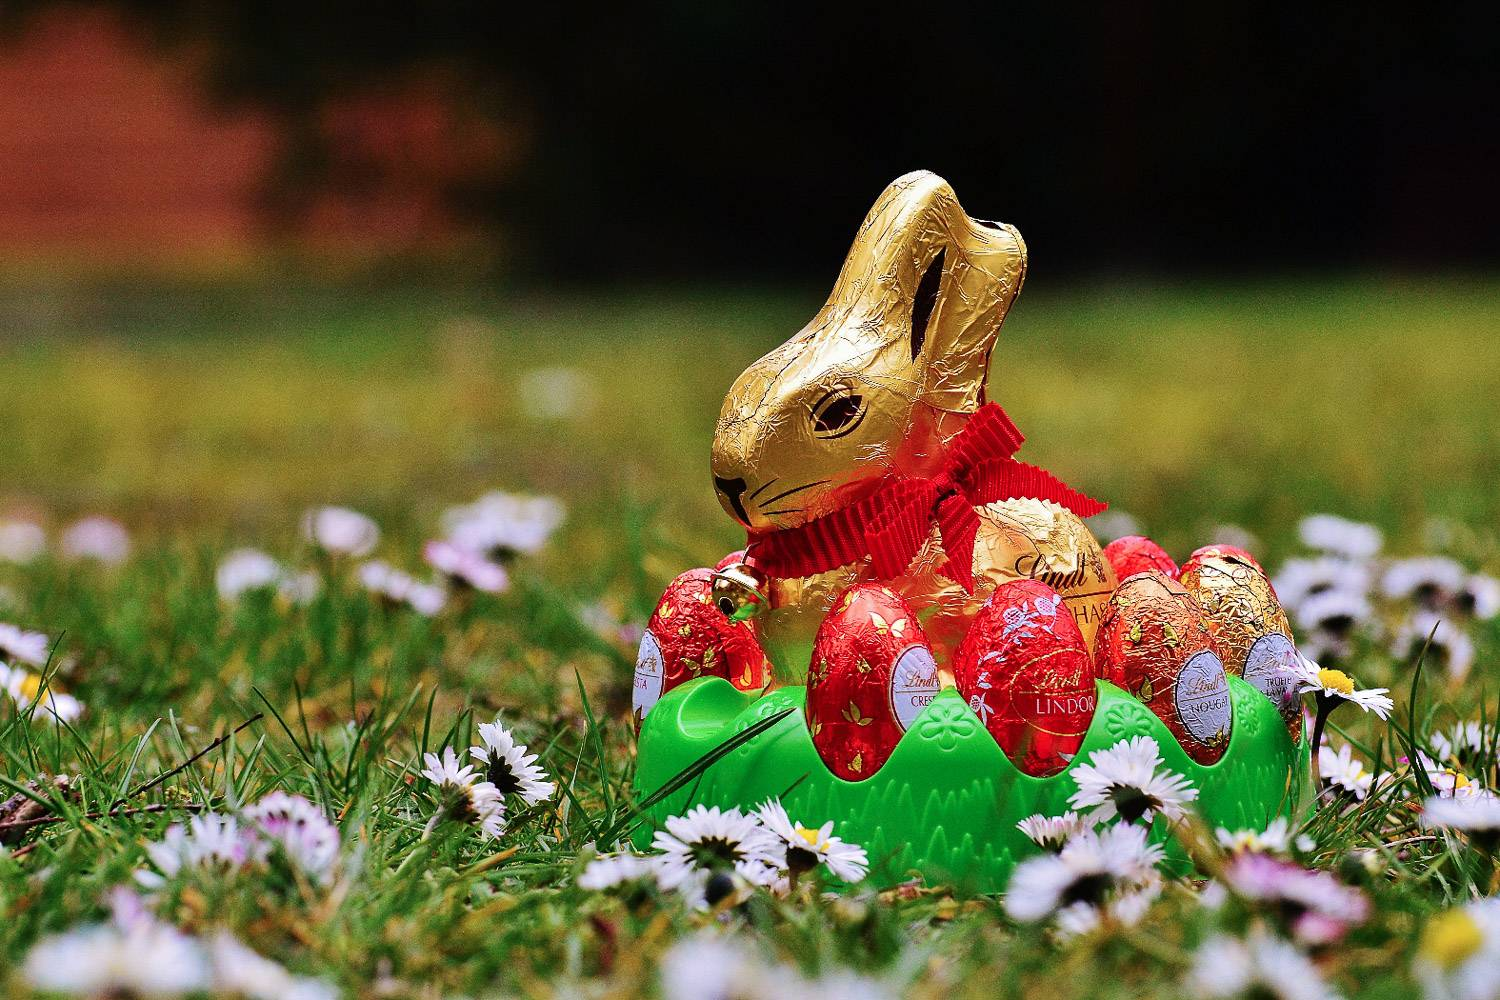 Image of a Lindt chocolate bunny laying on the grass and surrounded by chocolate eggs